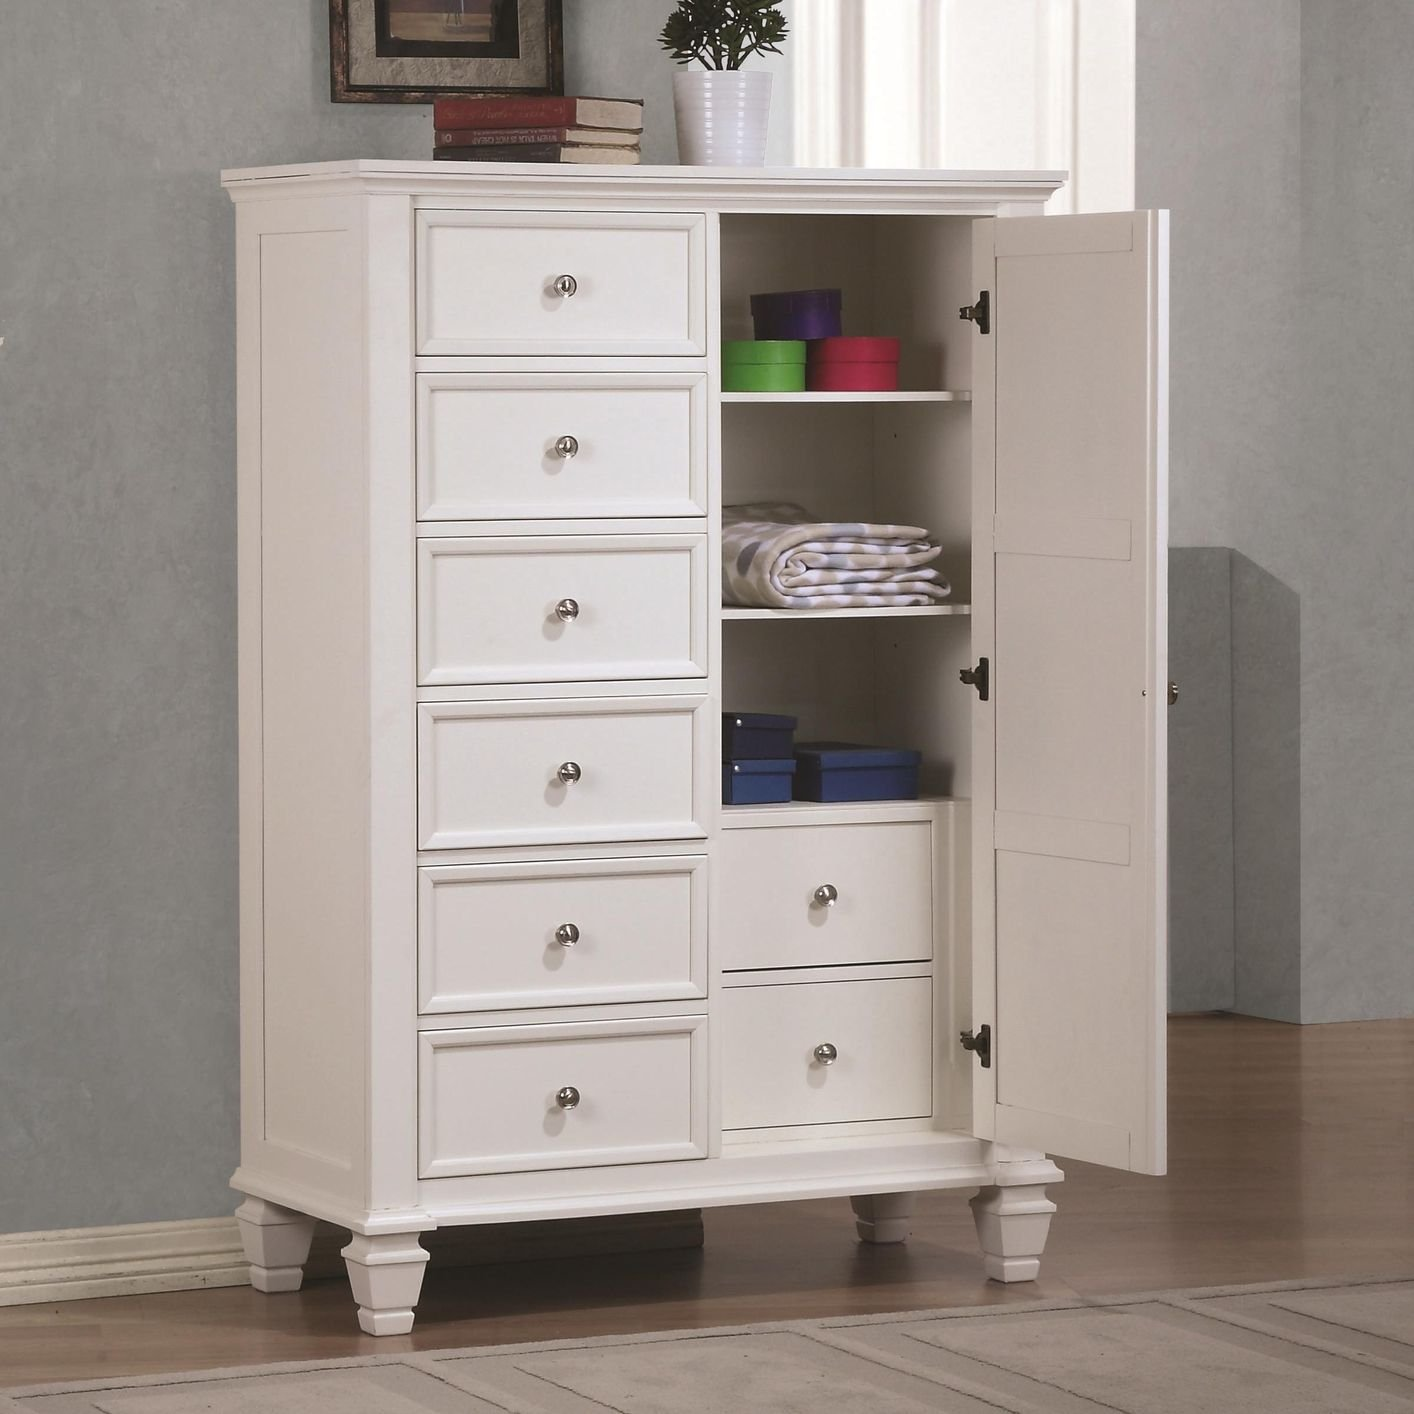 Images of white chest of drawers white wood chest of drawers dhjedva